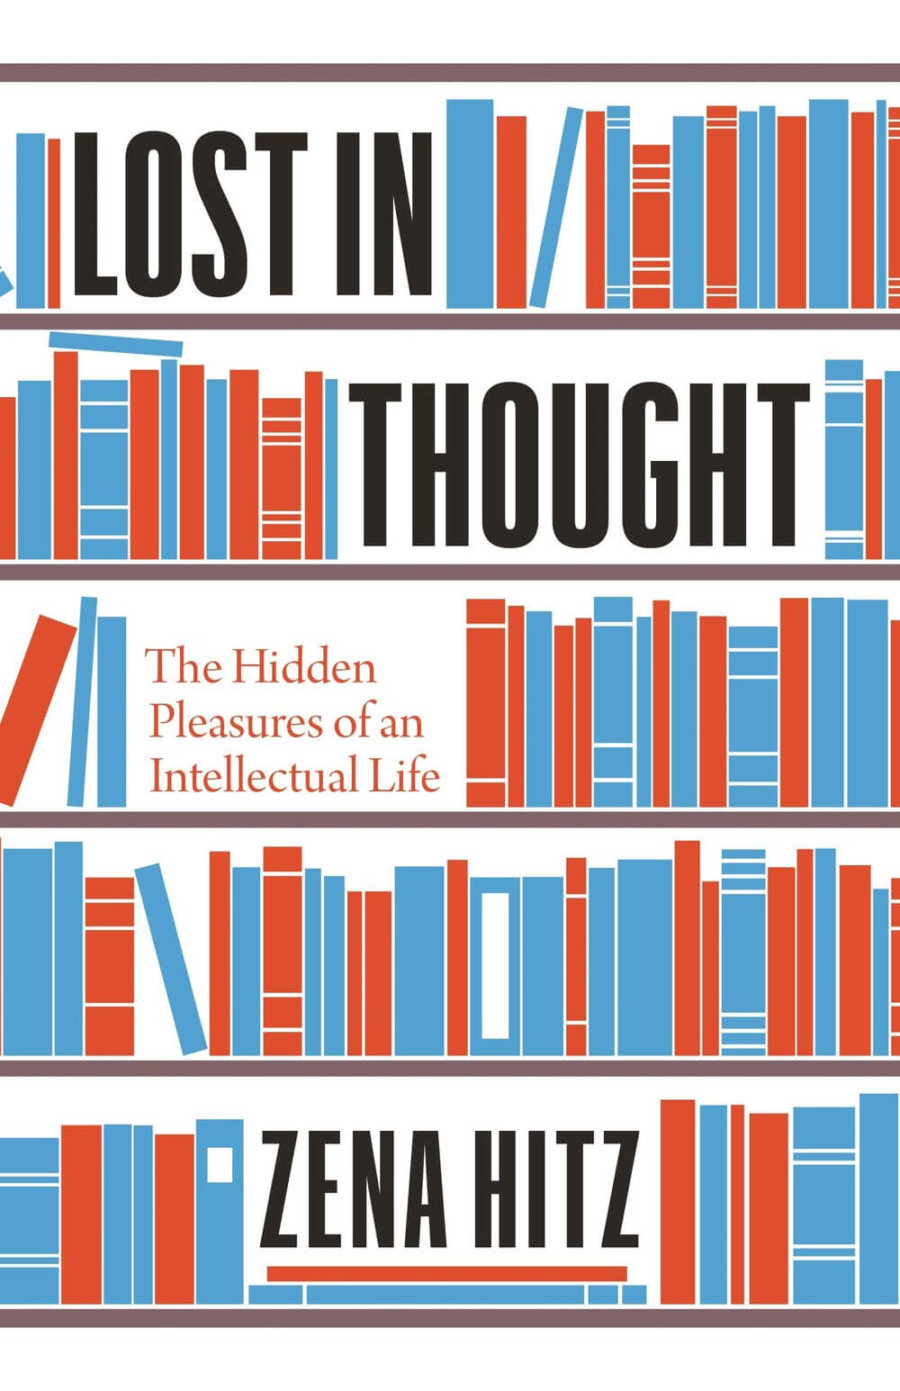 Recovering The Questions Of Ordinary Human Life: A Review Of Zena Hitz's Lost In Thought